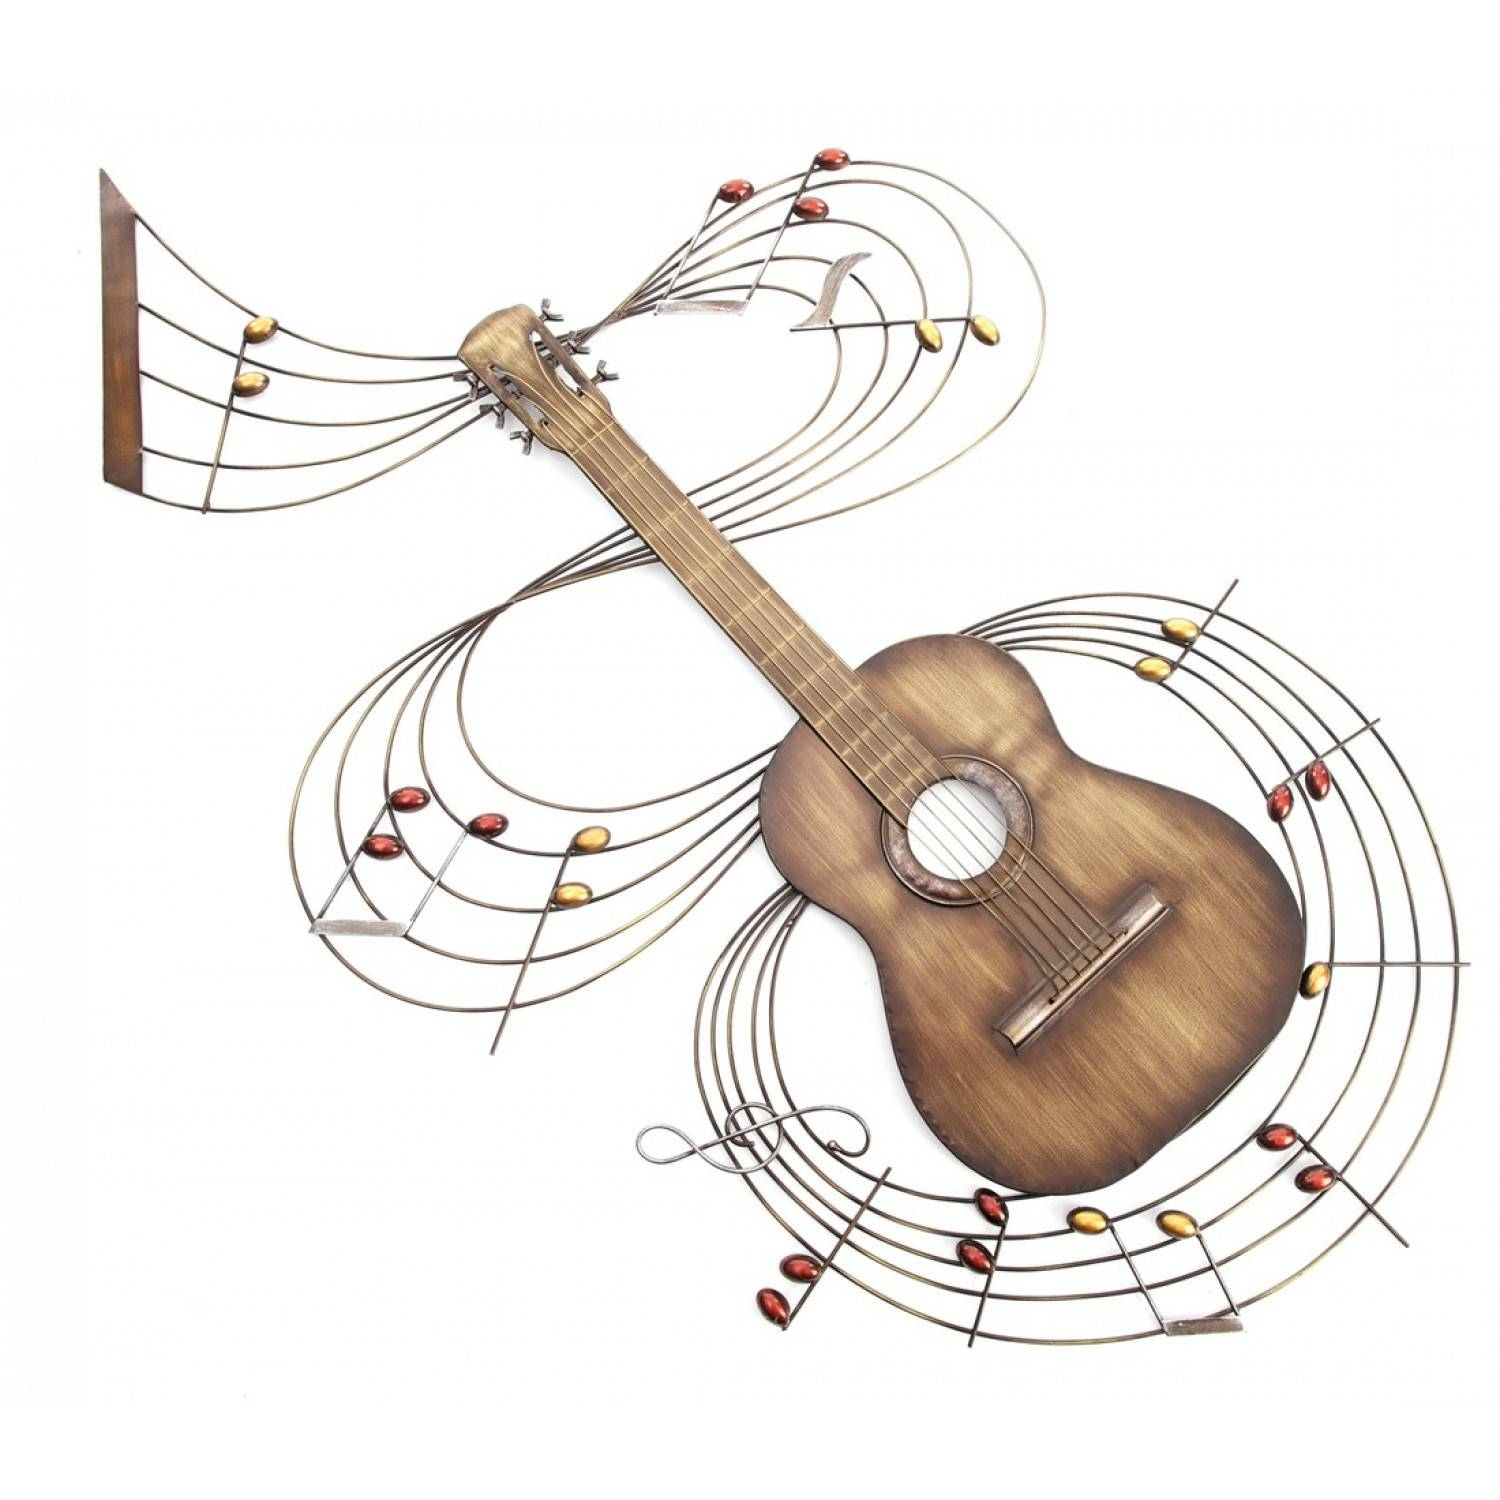 Designer Guitar With Musical Notes Metal Wall Art – Super Tech In 2018 Musical Instruments Metal Wall Art (View 19 of 20)